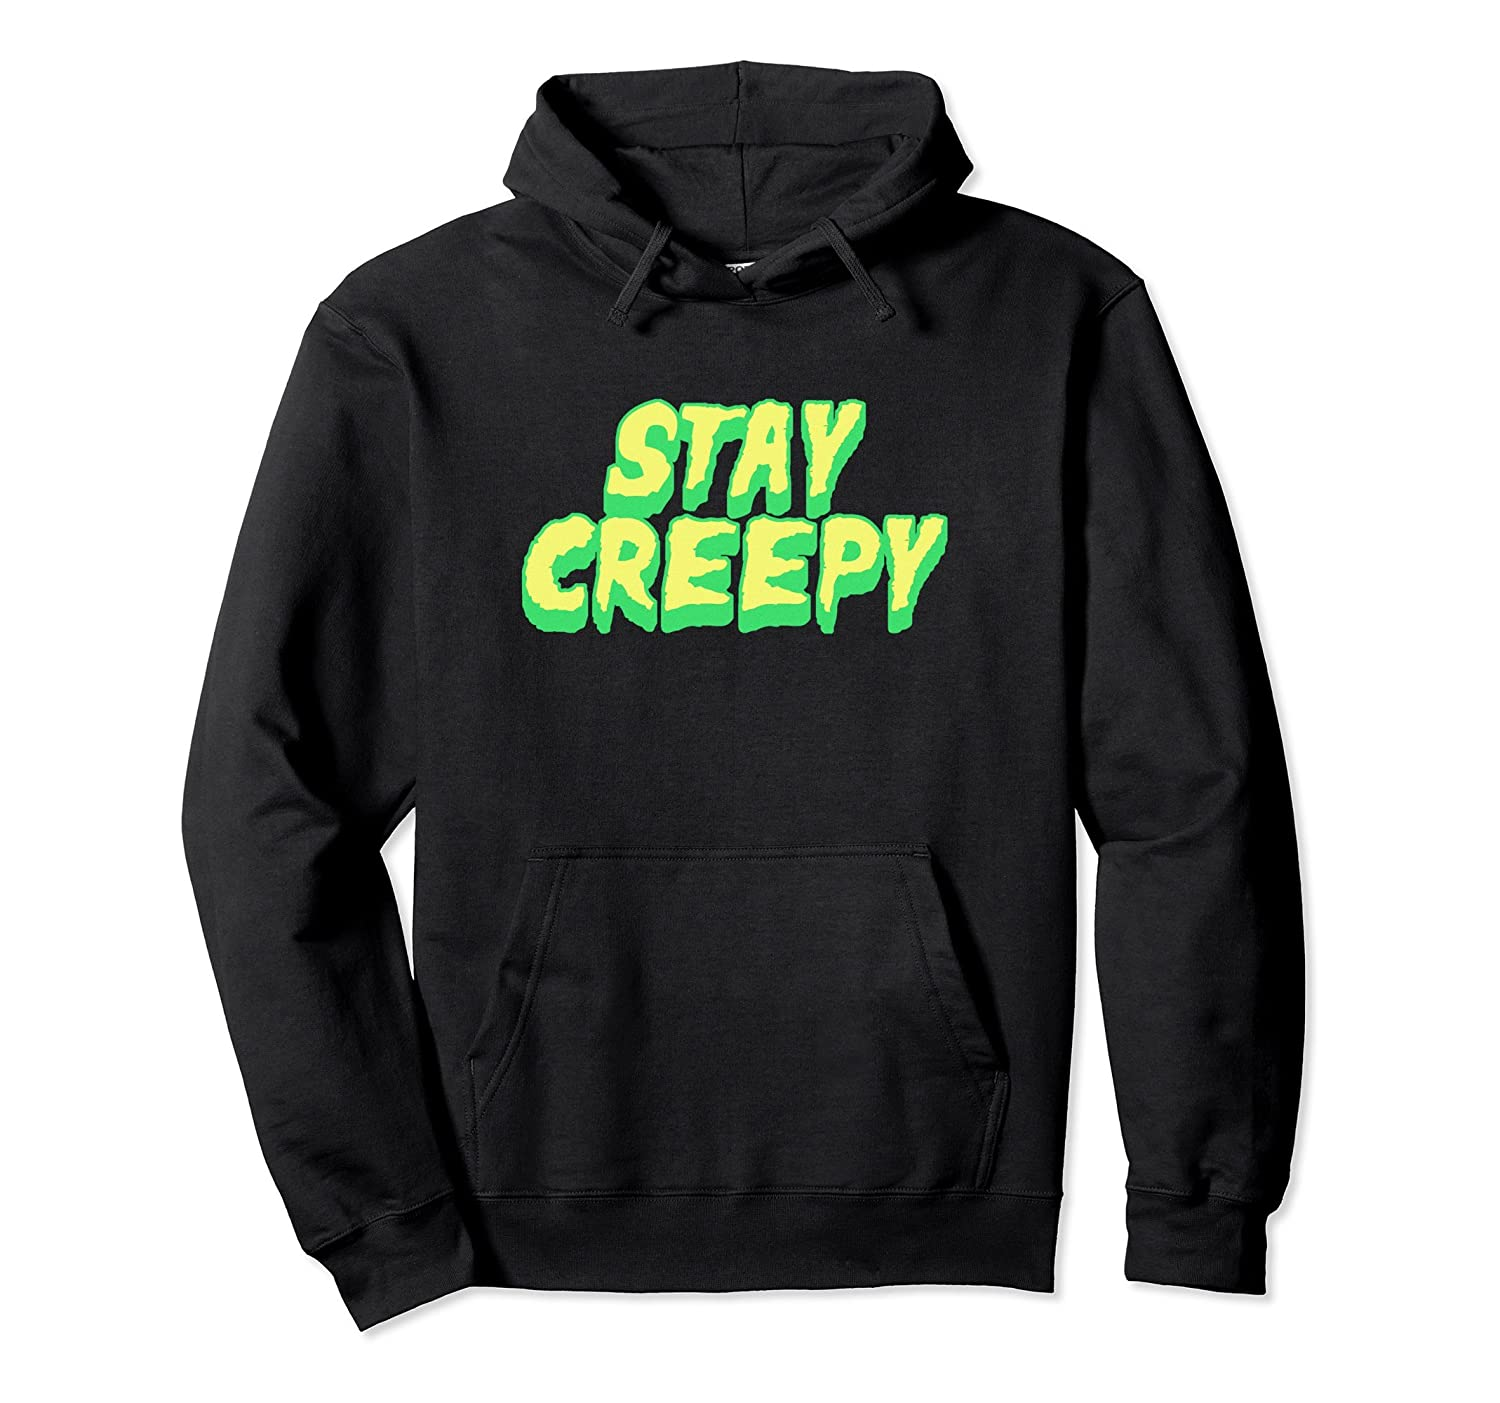 Funny Horror Movie Hoodie - Stay Creepy-Rose